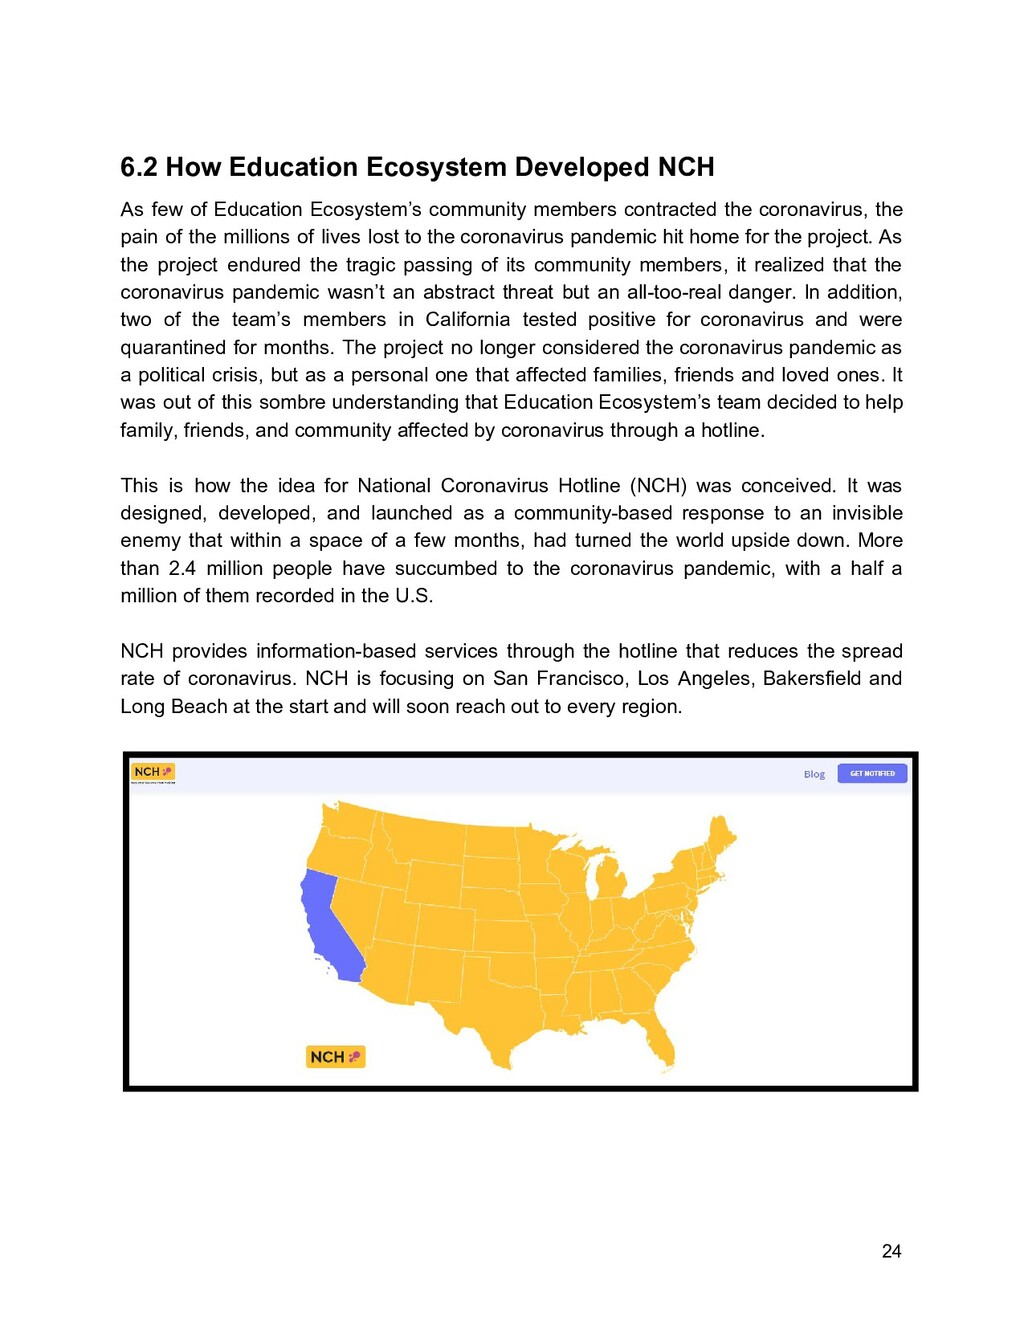 6.2 How Education Ecosystem Developed NCH As fe...